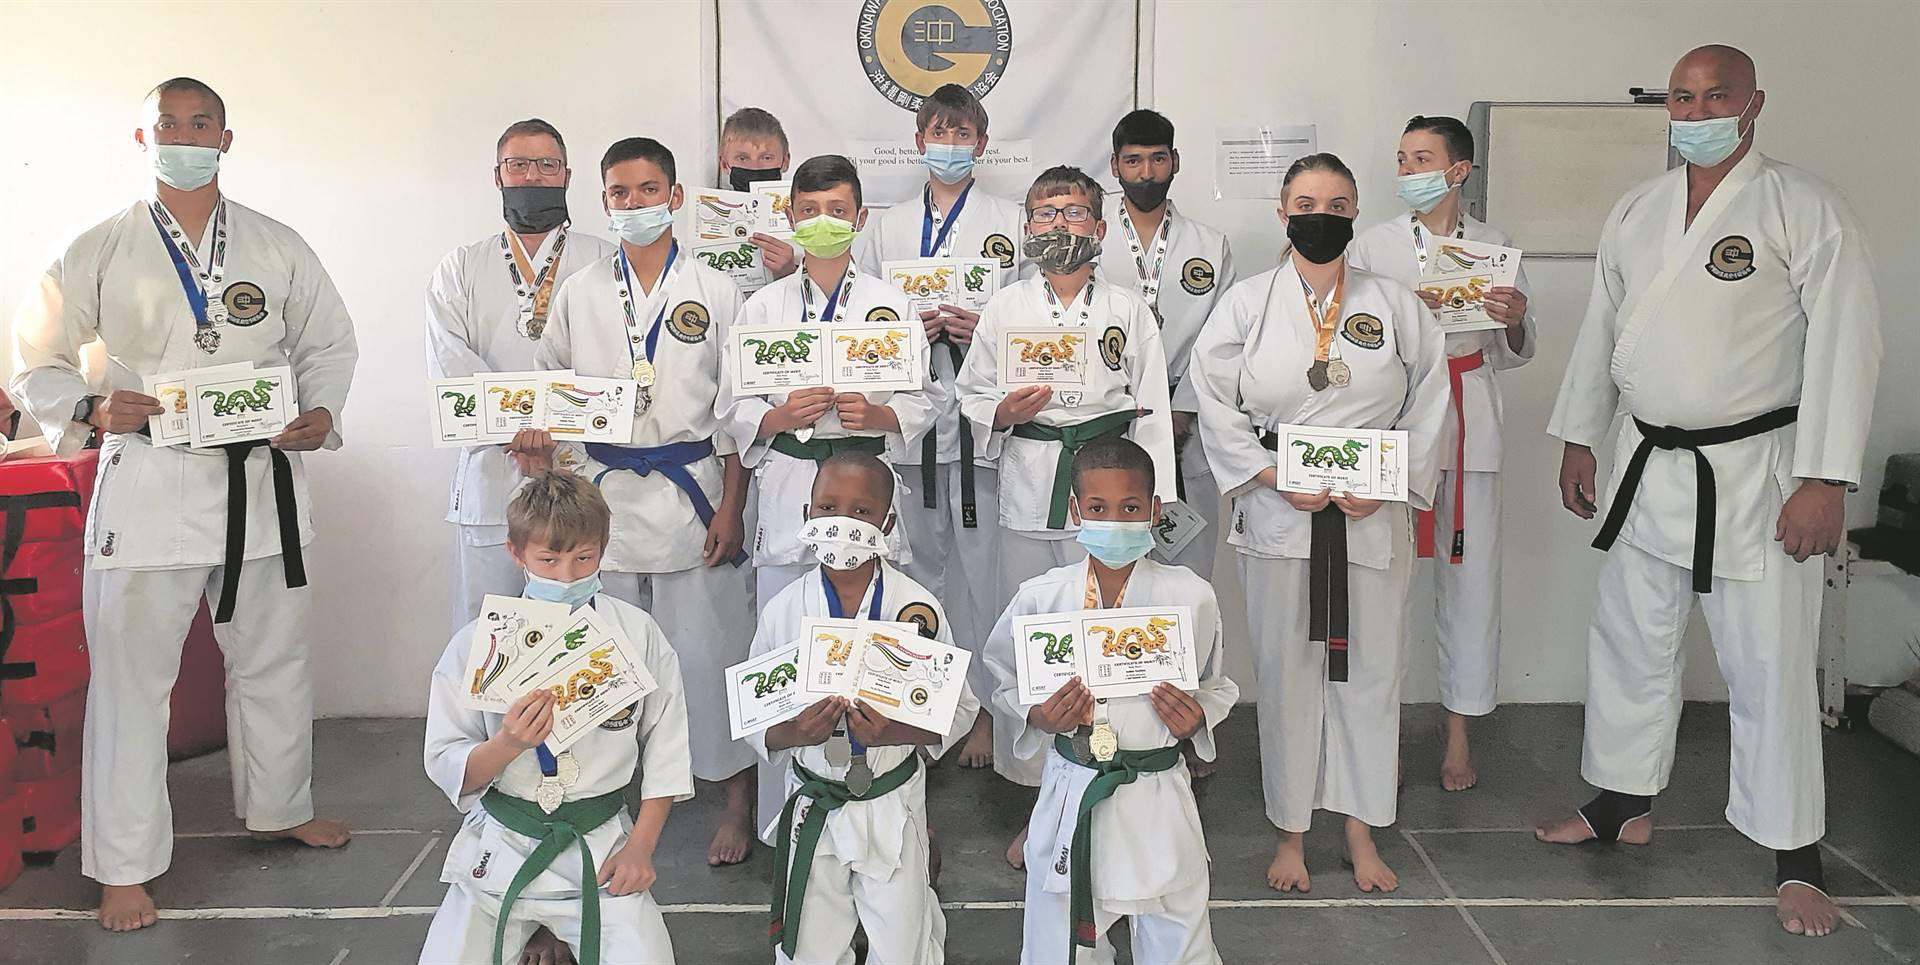 Karatekas of the OGKK Strand dojo participated in the Virtual Karate Kata Competition on Saturday 4 September, as well as the Okinawa goju ryu karate do kyokai Africa (OGKK) and the African goju ryu karate (AGKF) competitions. Karatekas of the Strand dojo secured the following medals five gold, 13 silver and five bronze medals in the OGKK event, as well as 12 silver and 10 bronze medals during the AGKF. Pictured is members of the Strand dojo's Tuesday class with their certificates.